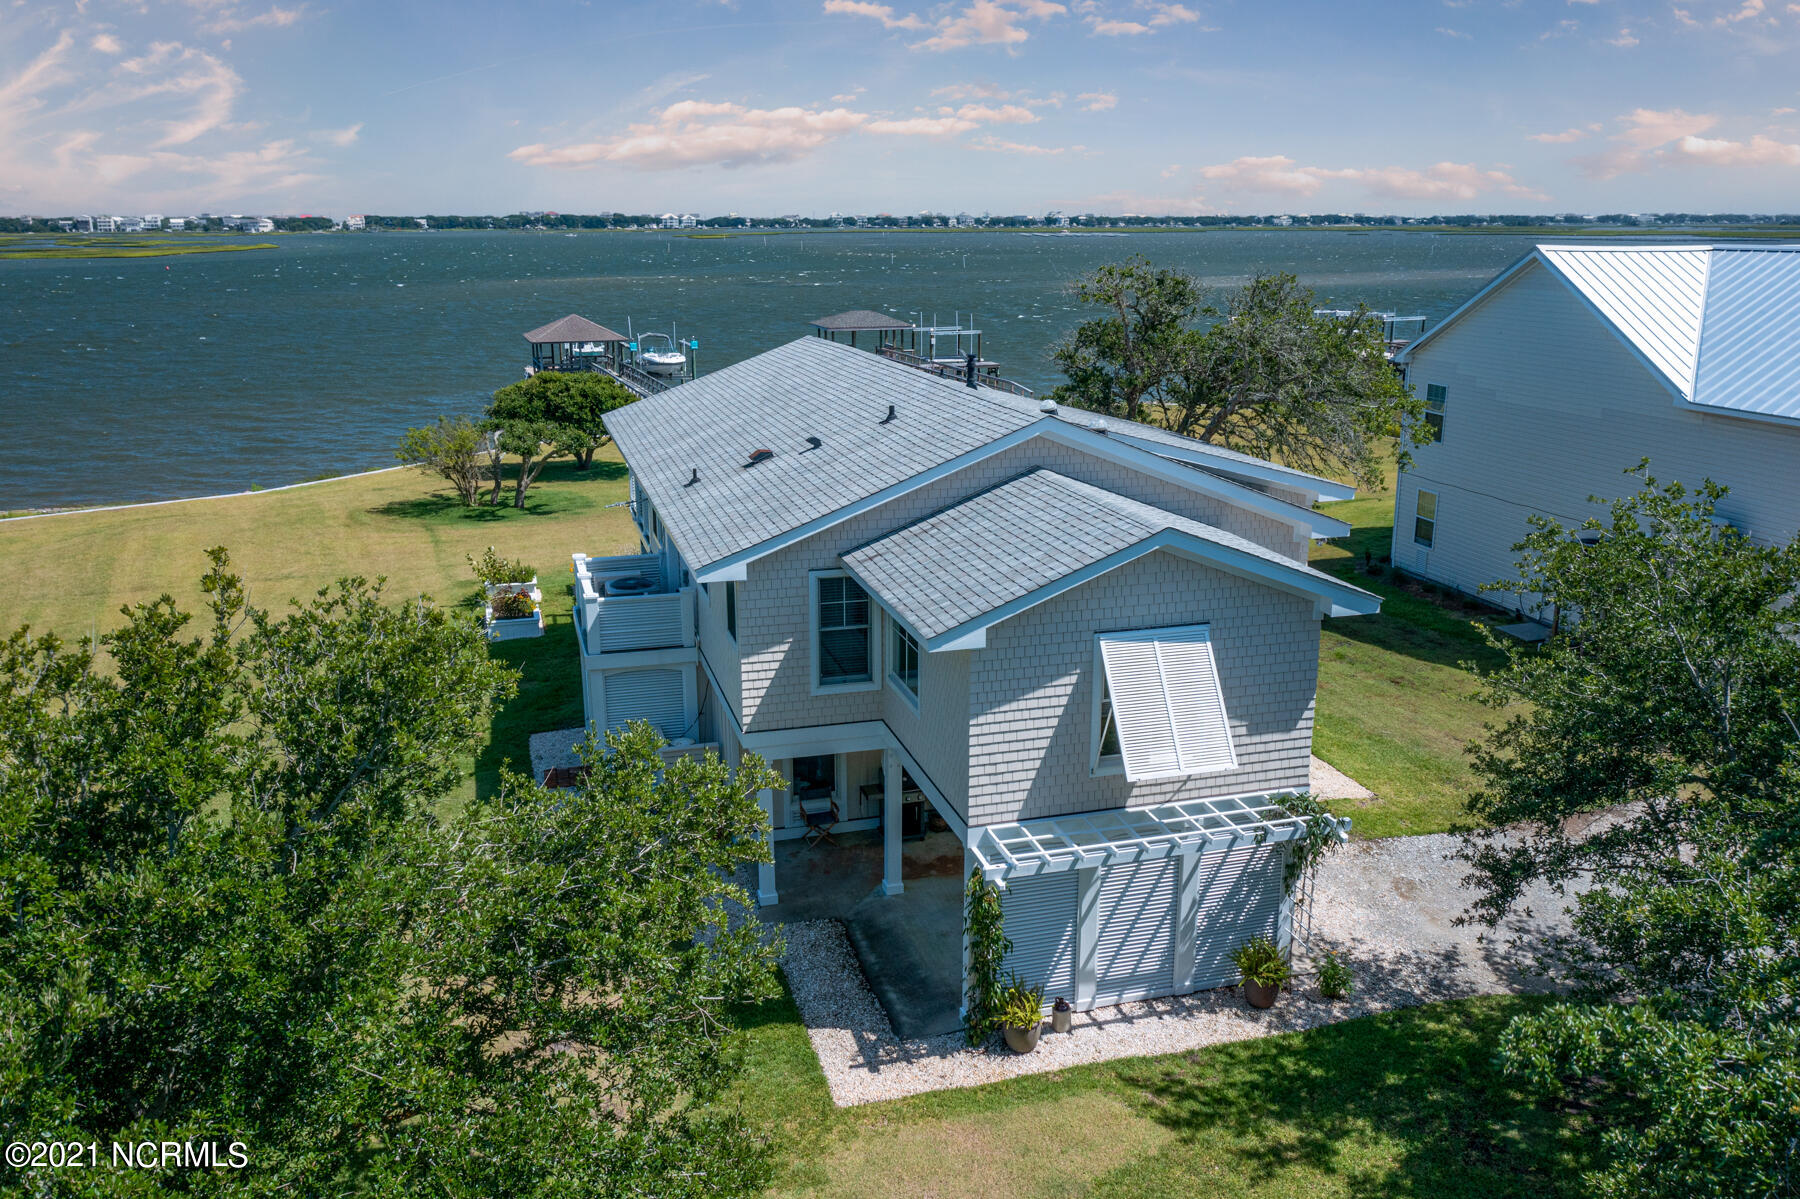 ICW front cottage with gorgeous, unobstructed views of the waterway and Topsail Island!  Located on a large, private .79 acre lot with NO HOA, this one is a rare find!  On the main living level, you will find beautiful hardwood flooring throughout, and lots of large windows showcasing this home's magnificent island views and bringing in tons of natural light. The master bedroom suite is equipped with two closets, solar tubes to brighten up the space, and a newly remodeled master bathroom with heated tile flooring, dual sinks, a large walk- in shower, plenty of toiletry and linen storage, and a spa- like soaking tub with more incredible views of the ICW and the Surf City bridge! A cozy guest bedroom and a full bath are also conveniently located upstairs off the kitchen and family room.  On the bottom level you will find an additional bedroom space also with water views, 2 flex spaces, and another full bathroom.  Enjoy your very own private private pier and dock with two boat lifts (10,000 and 5,000 lbs) and just imagine the ease of jumping in your boat on a whim to fish, cruise, or sandbar hop! Other noteworthy features include:  an outdoor storage shed, a newer bulkhead, a tankless hot water heater, a huge deck overlooking the water with beautiful cable railing, plenty of deck space to dine under the stars, and beautiful crystal gas logs in the family room for those chilly nights at the beach.  The yard is beautifully manicured and spacious and includes garden beds for the perfect spot to grow your own flowers and veggies while watching the boats go by! Paradise found!